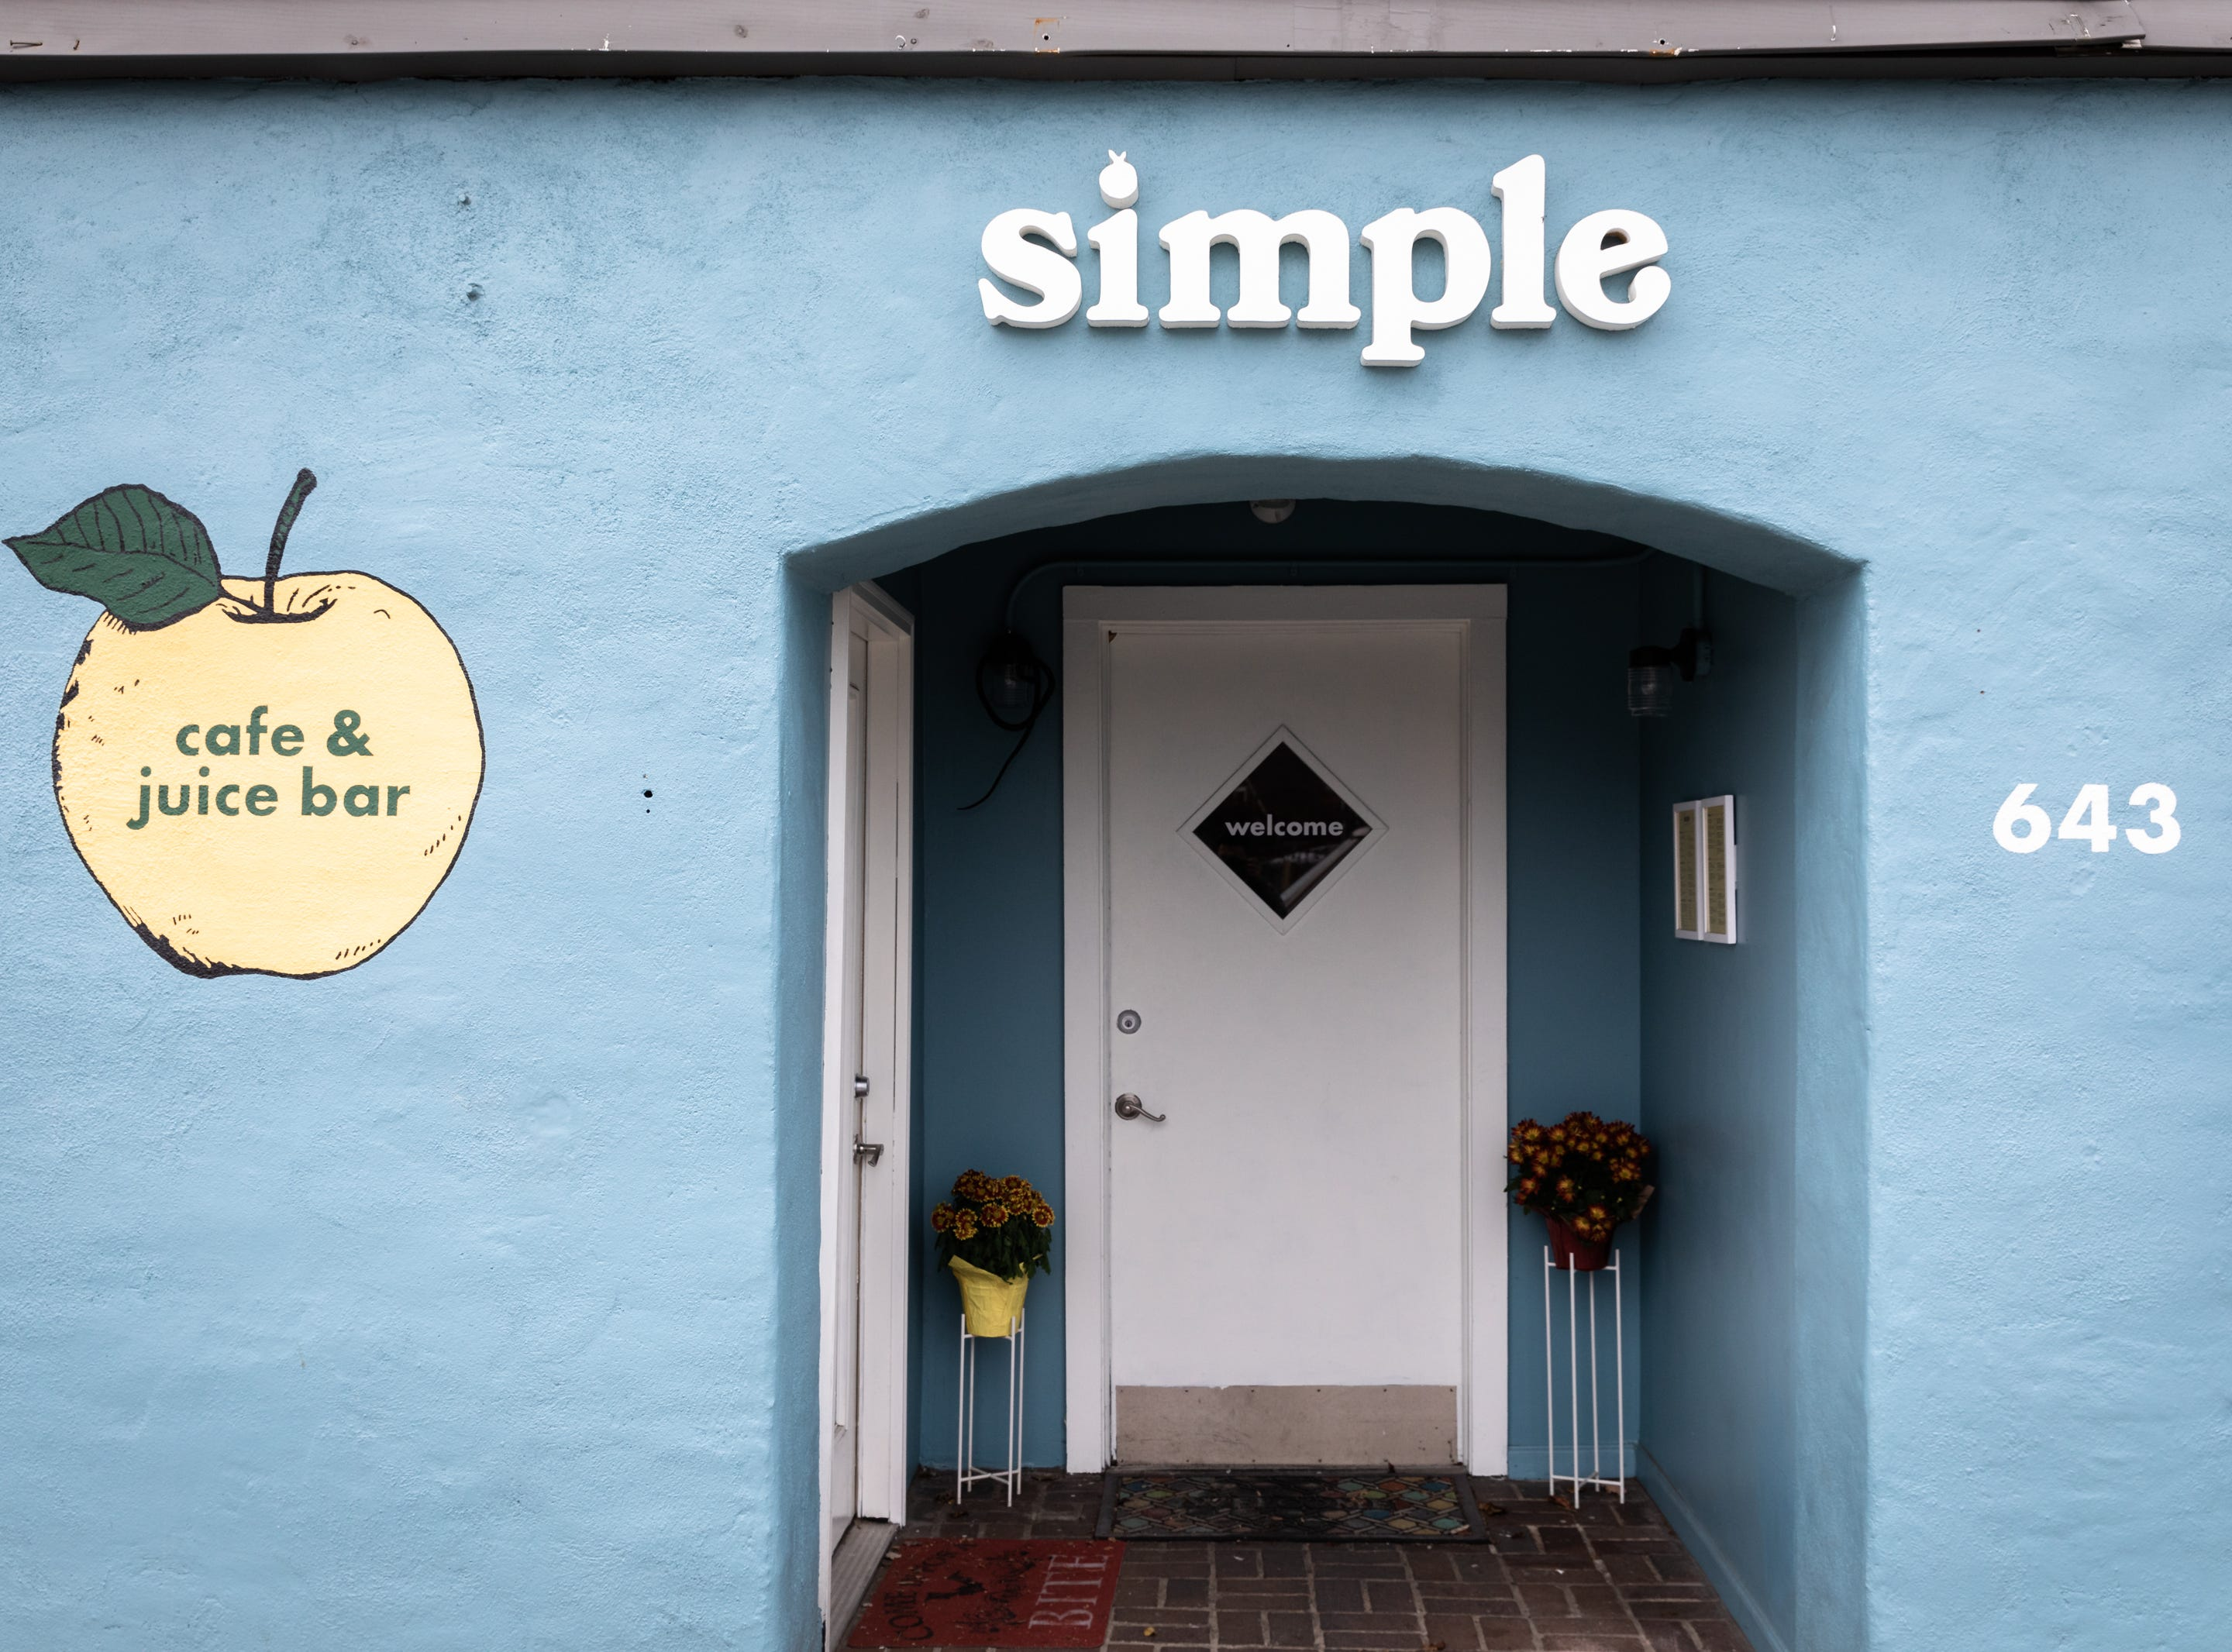 Simple Cafe & Juice Bar on Haywood Road in West Asheville.